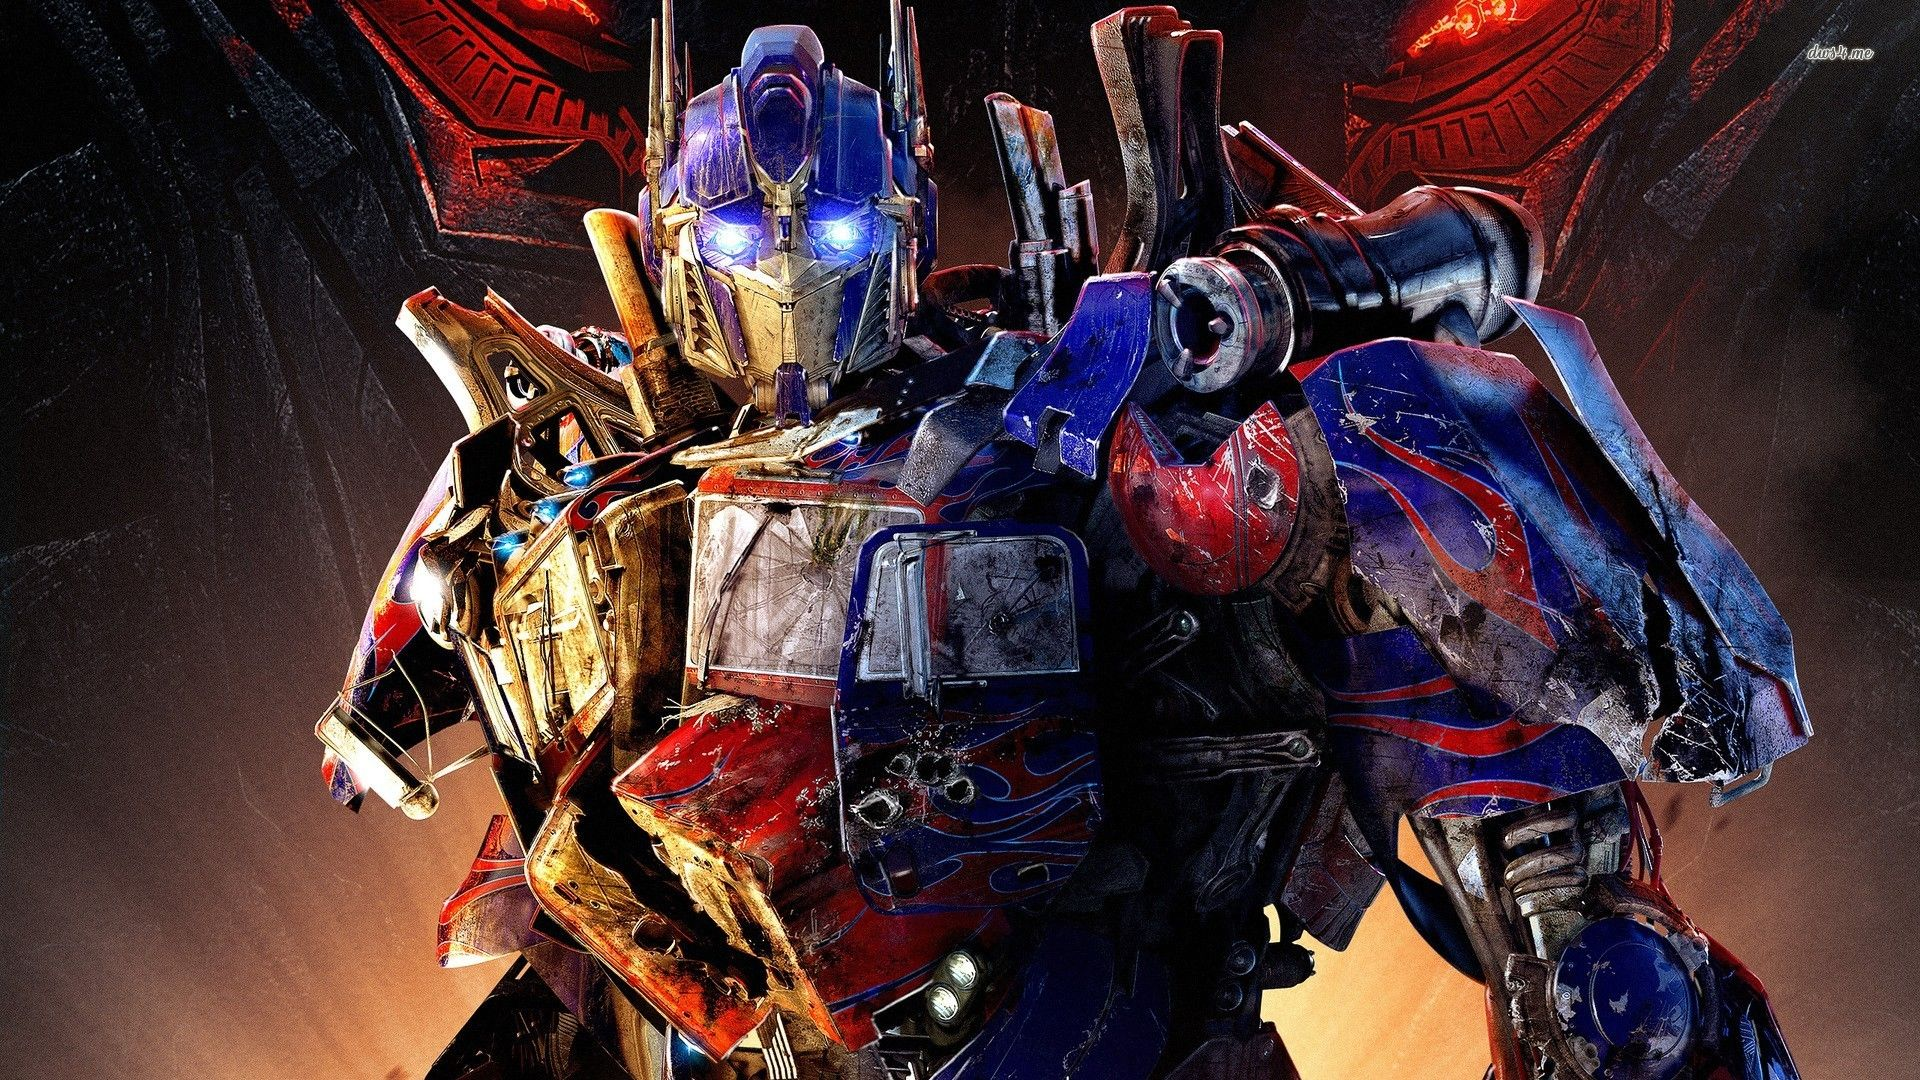 hd transformers wallpapers backgrounds for free download 1200×750